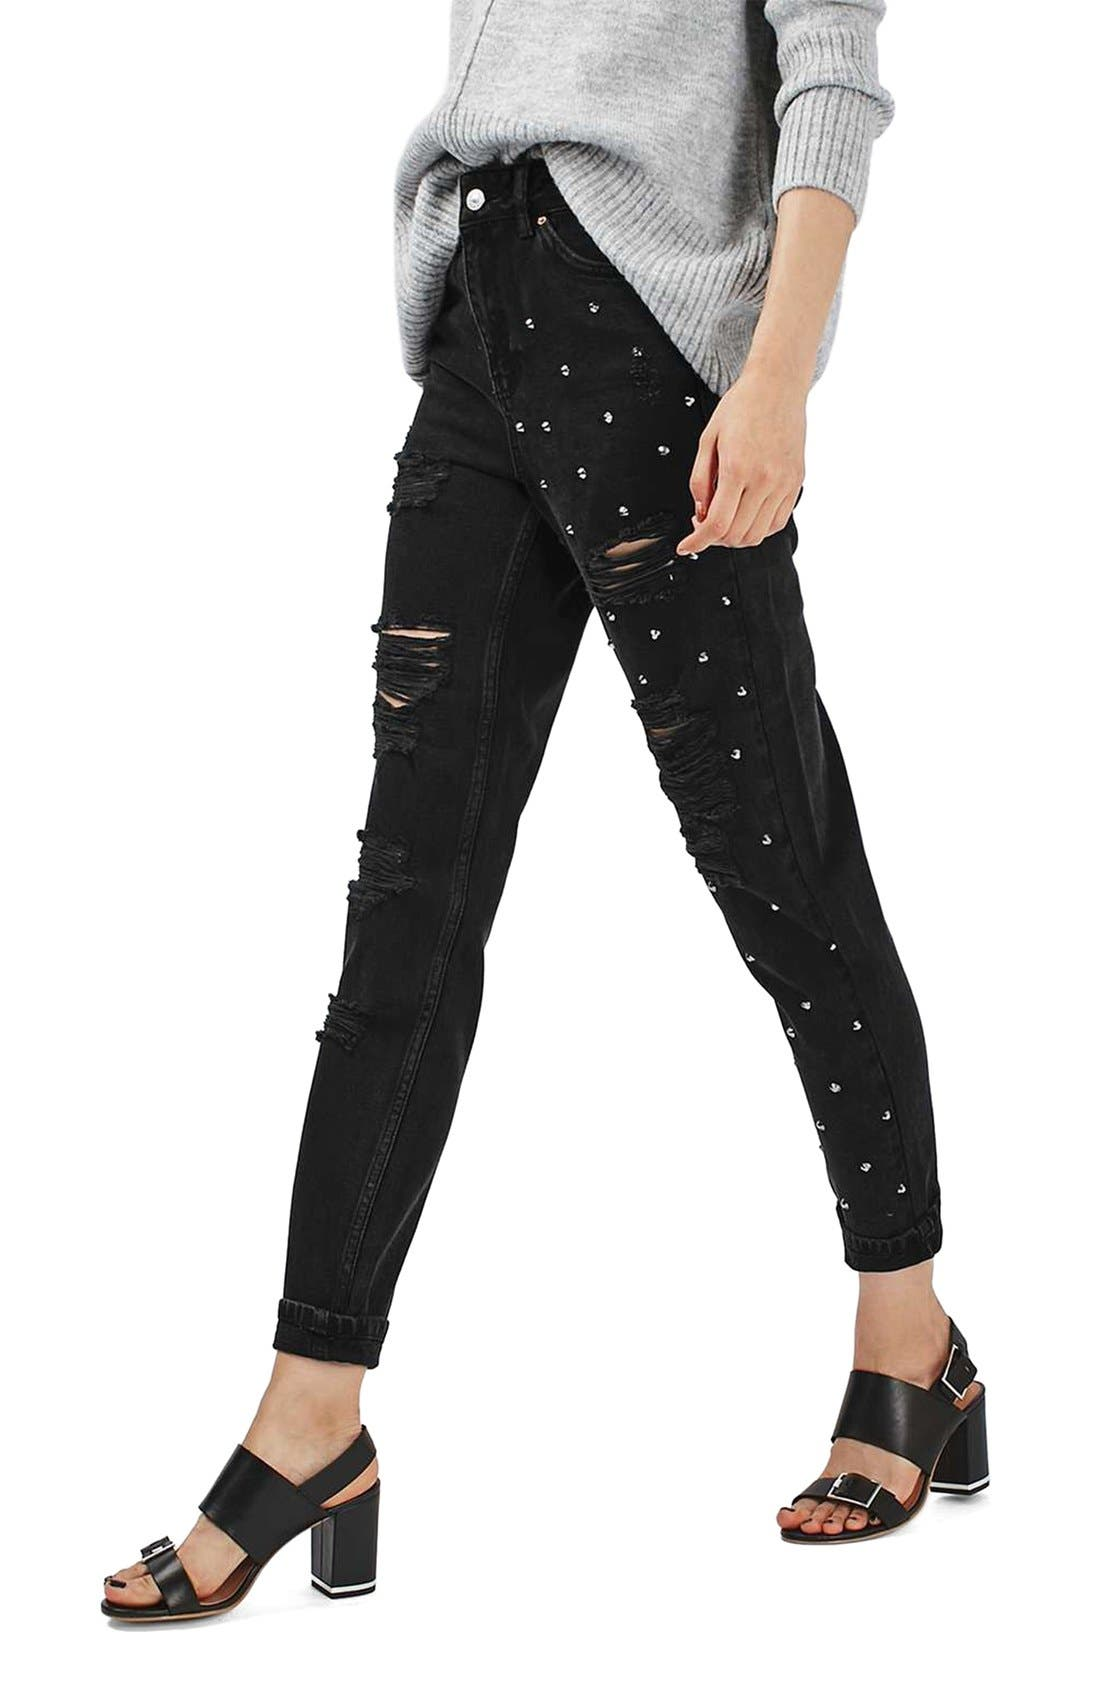 Alternate Image 1 Selected - Topshop Moto Mom Studded Super Ripped Jeans